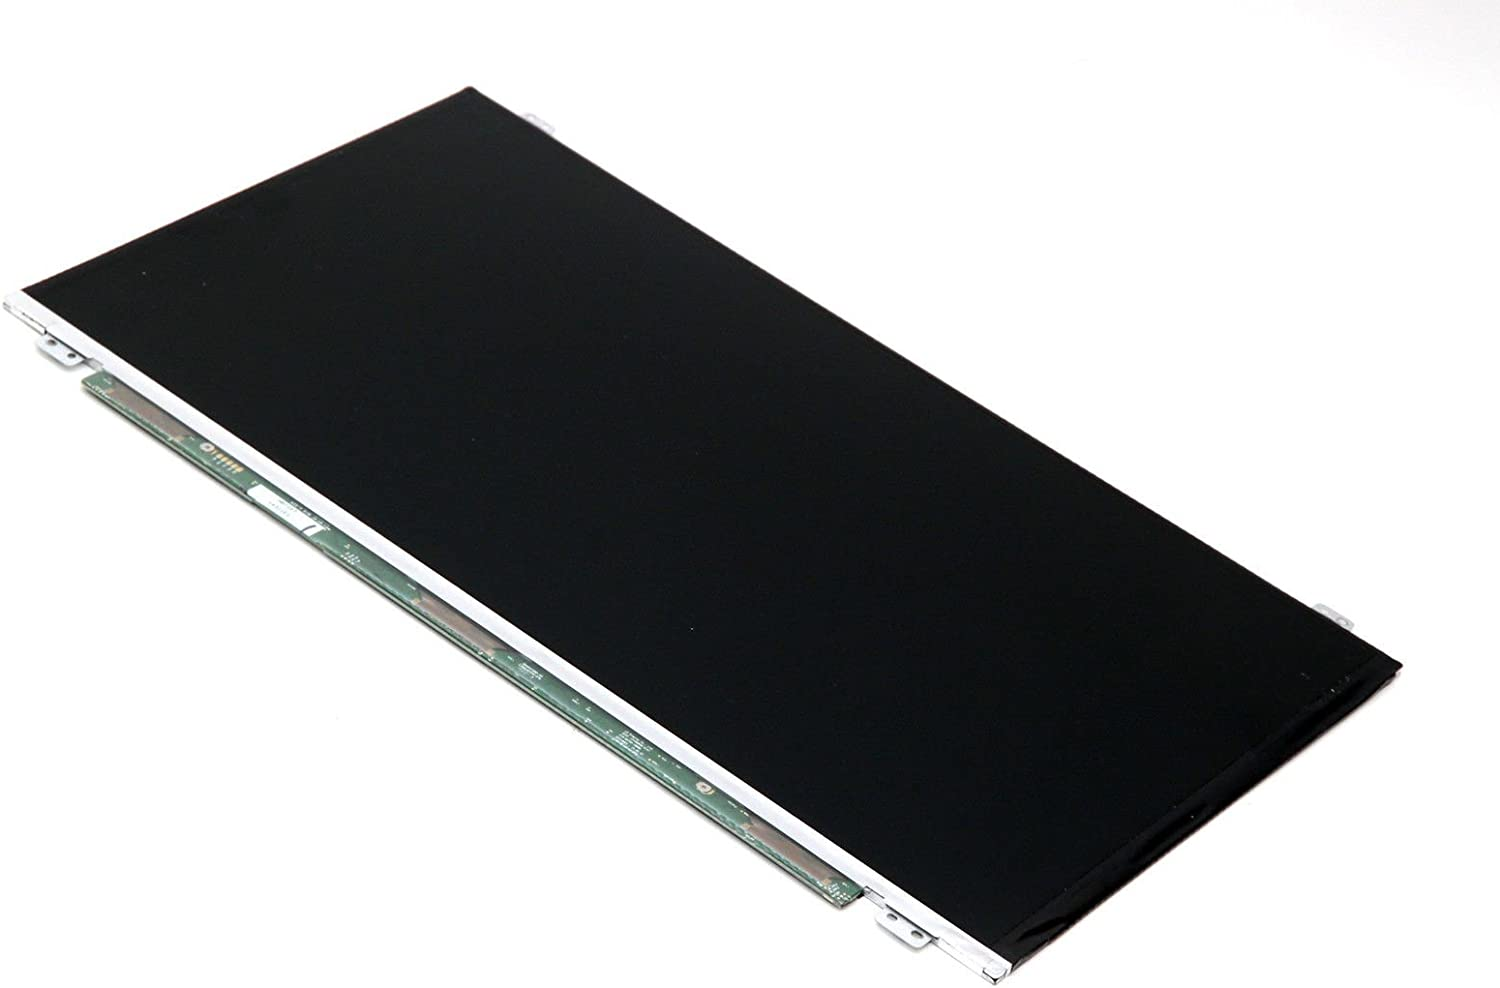 Generic LCD Display Replacement FITS - HP Pavilion 15-AU091NR Touch Screen + Digitizer 15.6